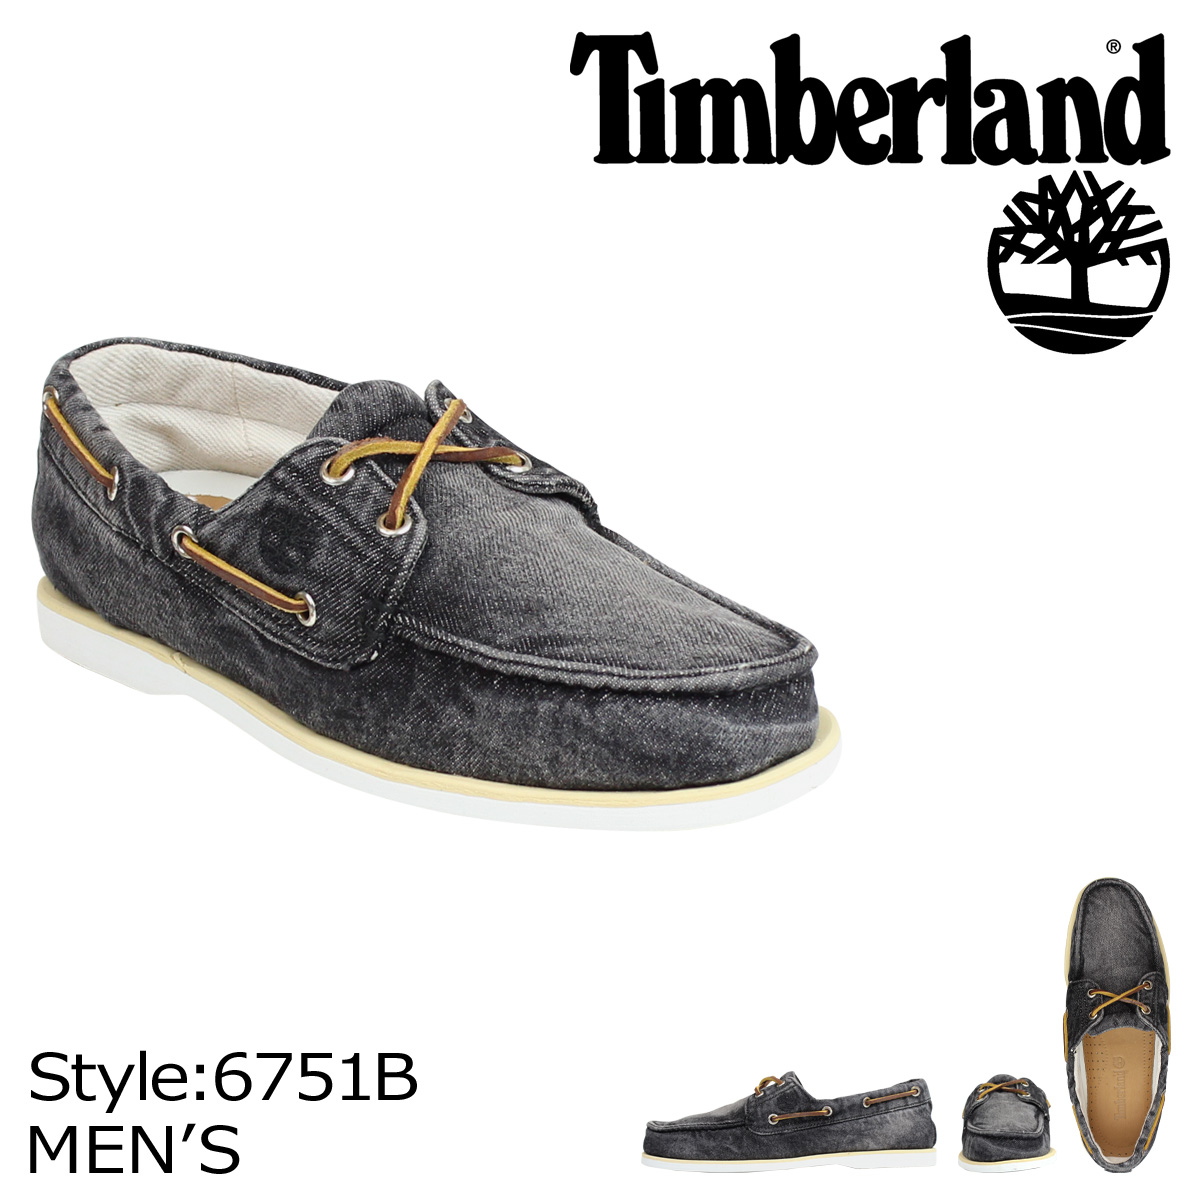 Whats up Sports  Timberland Timberland ICON CLASSIC 2 EYE DENIM deck shoes  icon classic Hall 2 denim 6751B black mens  5934aaa0fcd1